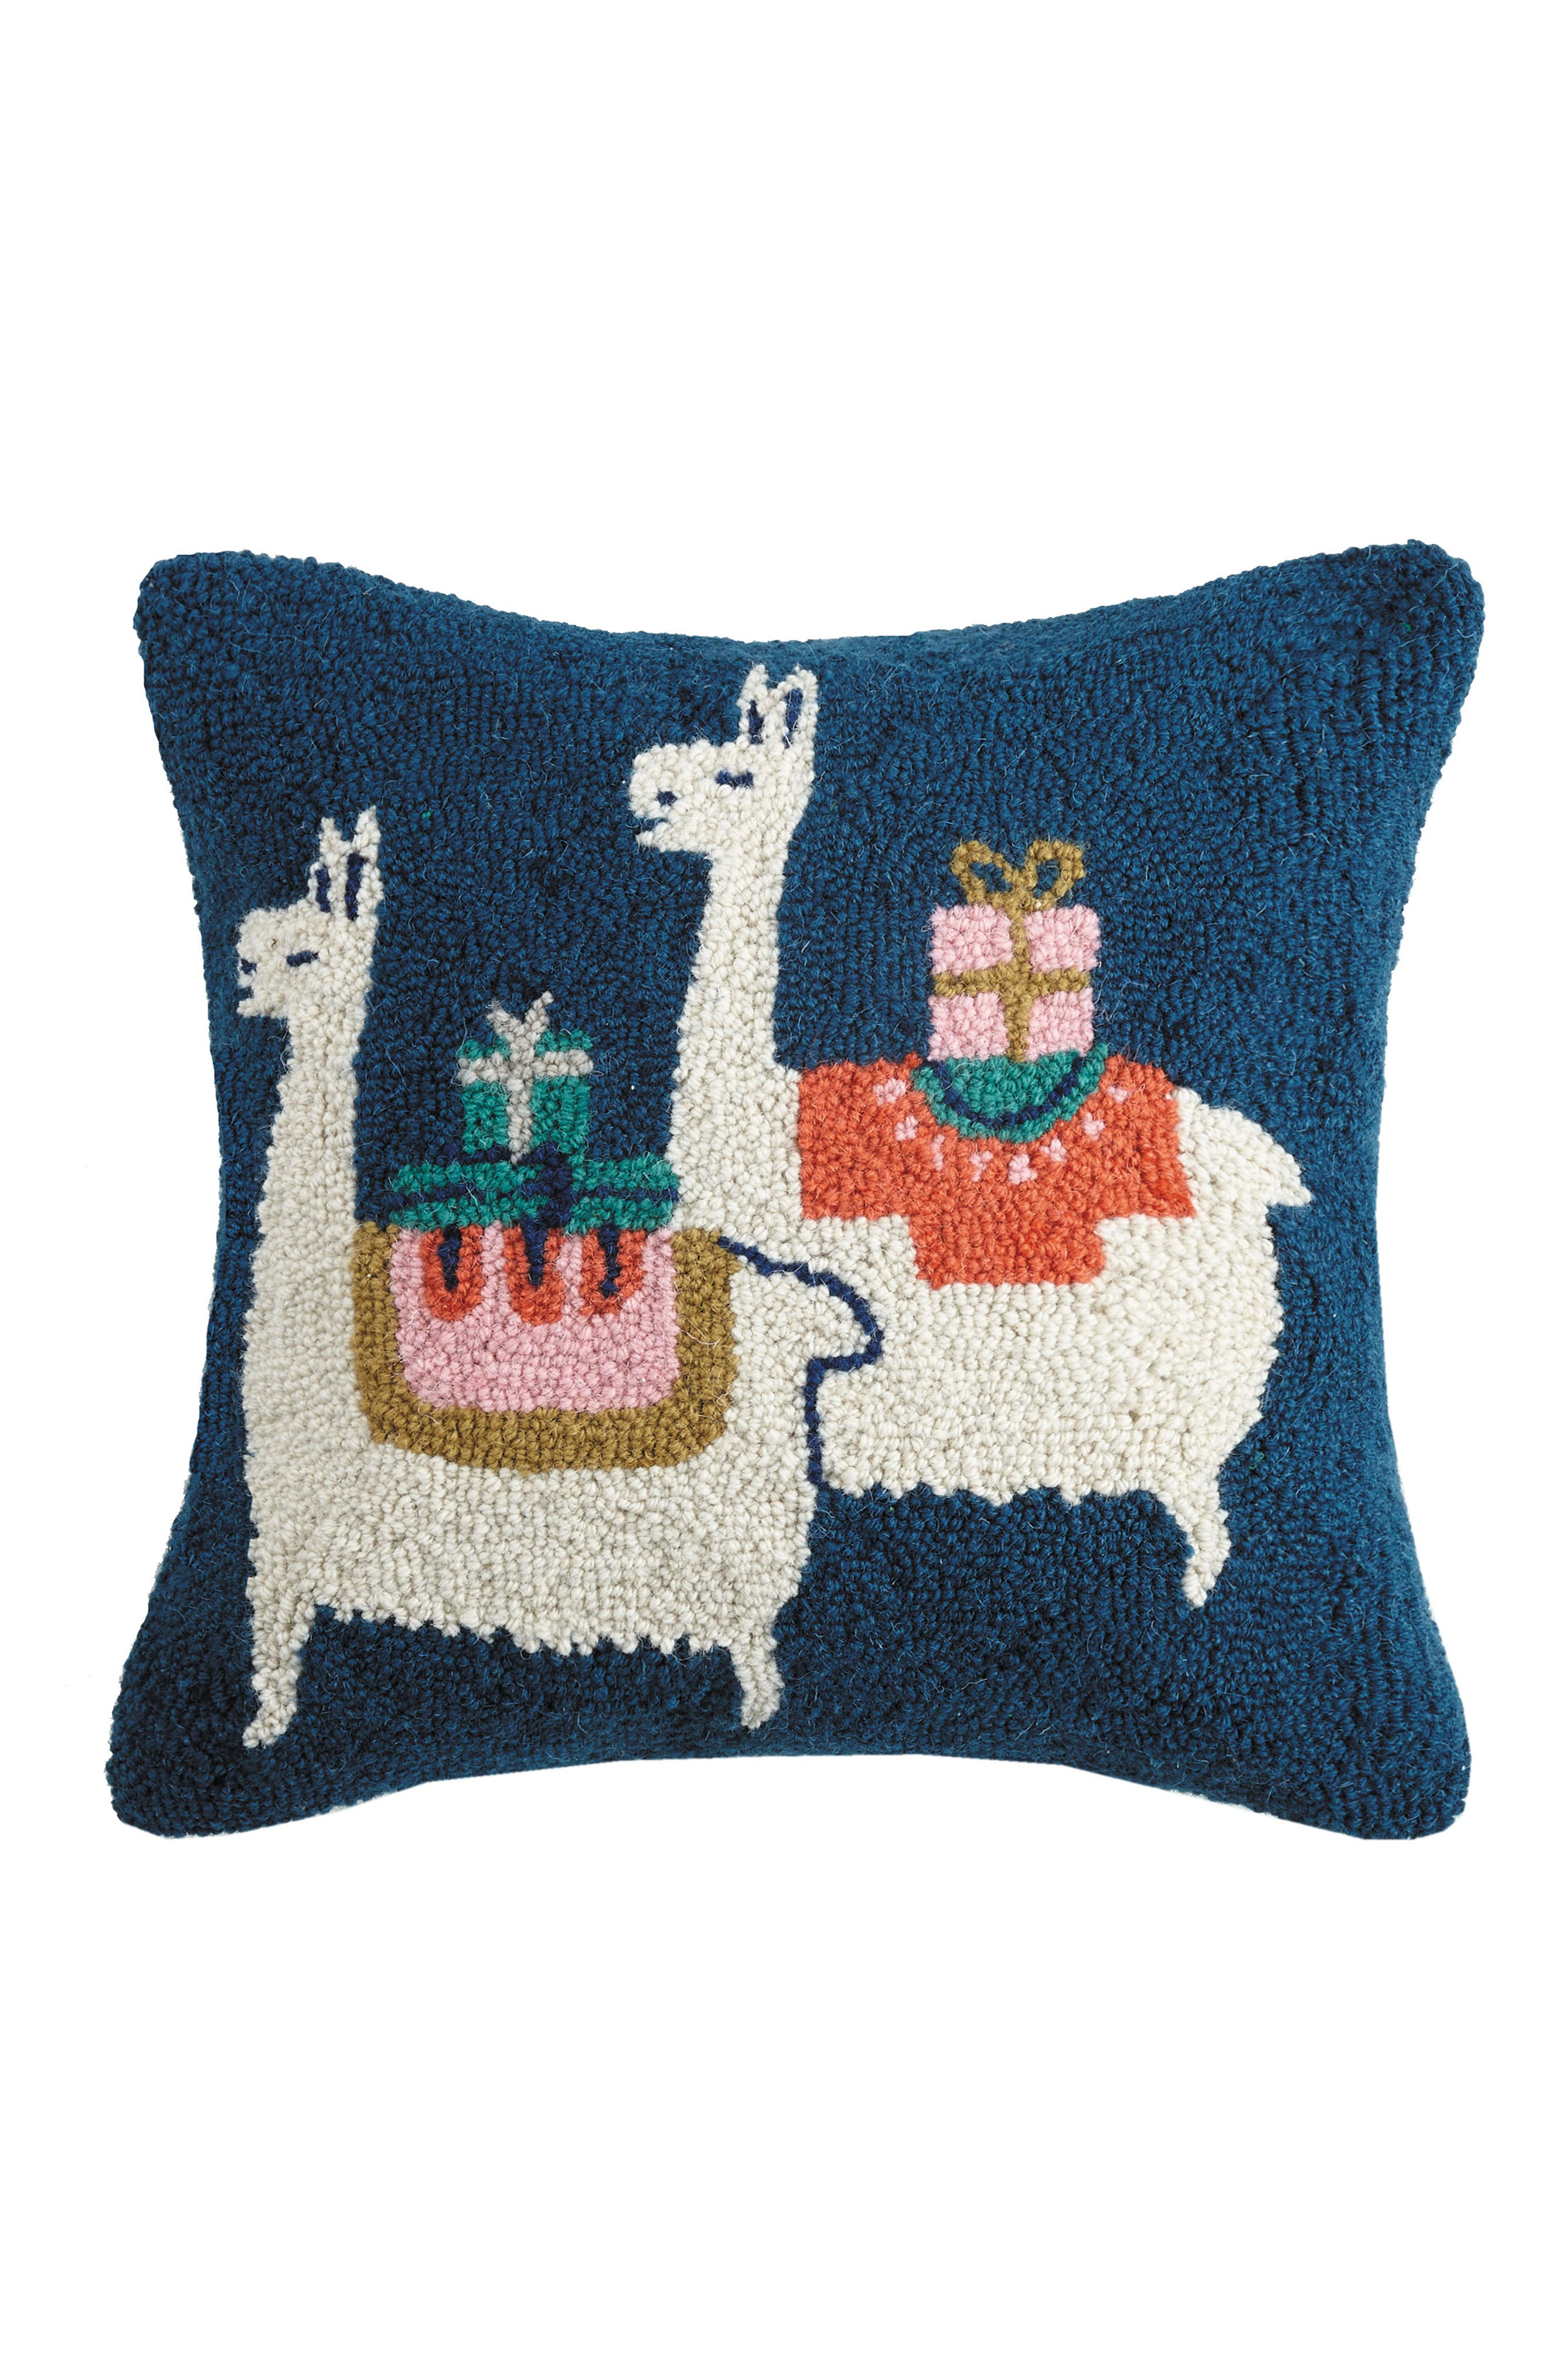 Presents from Llama Hooked Pillow,                             Main thumbnail 1, color,                             BLUE MULTI